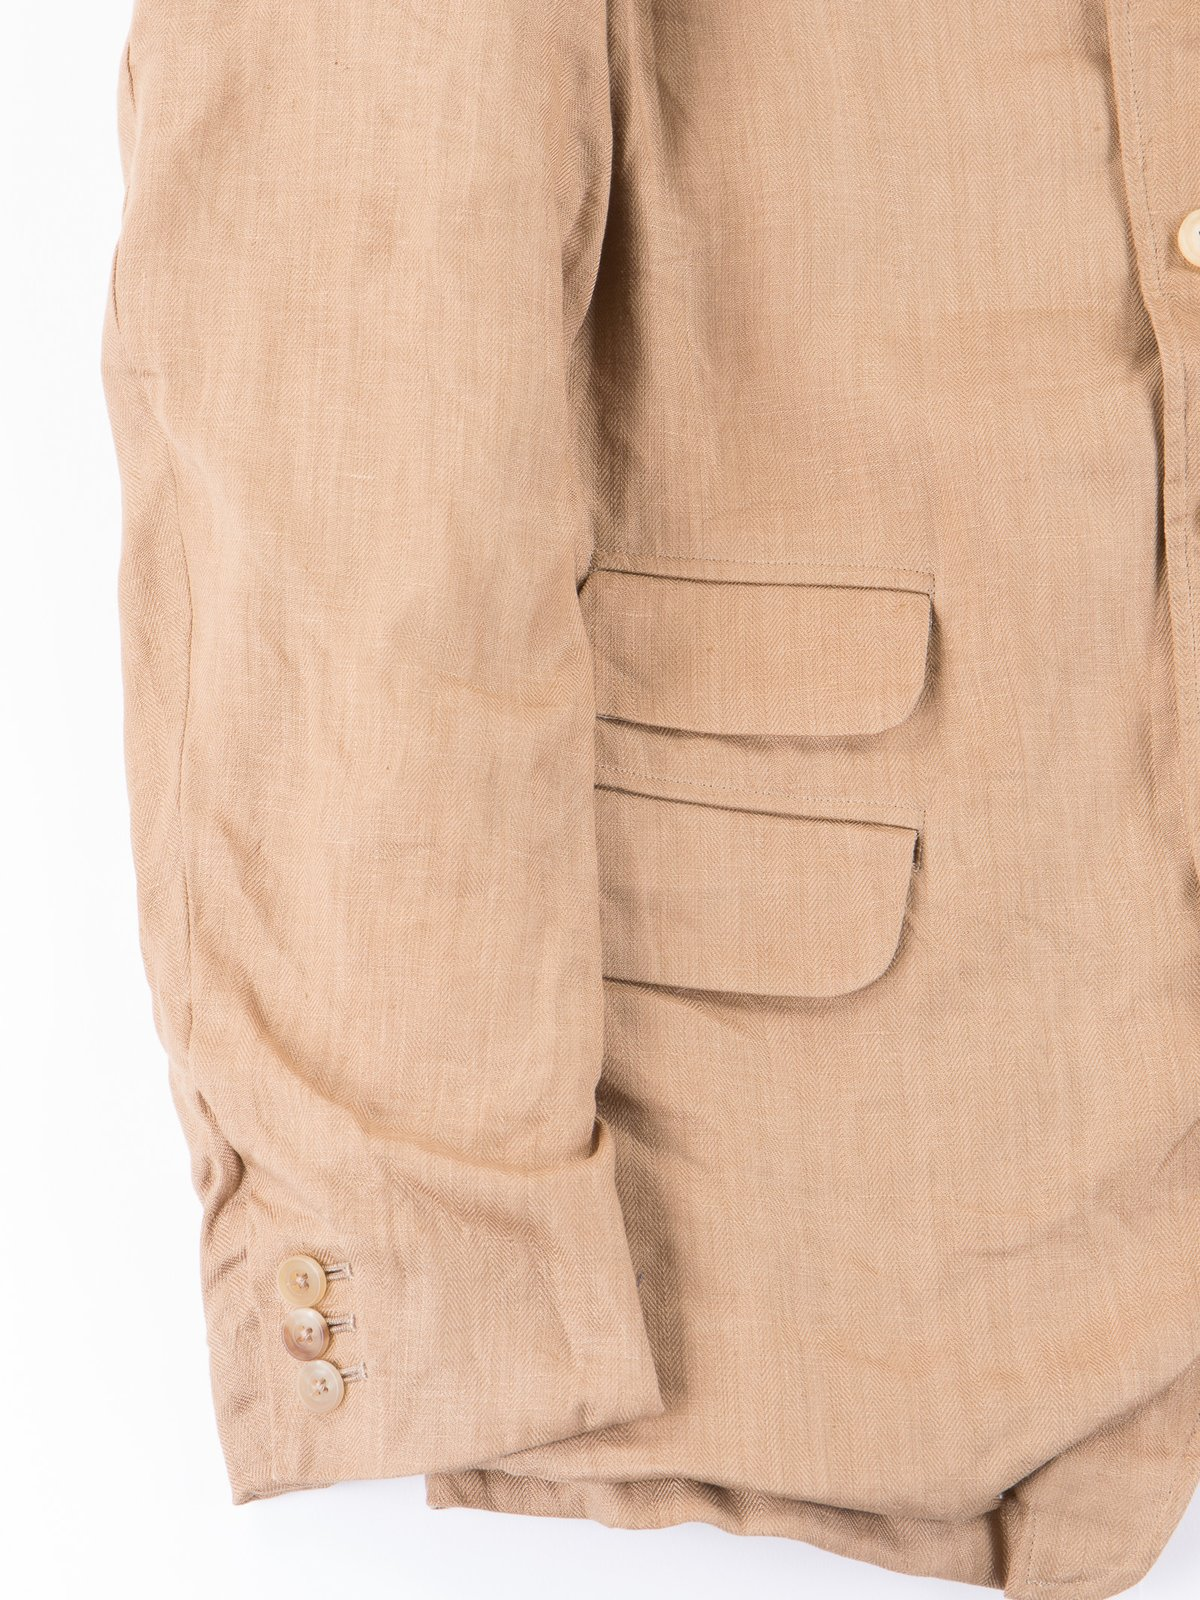 Beige Linen Old Potter Jacket - Image 3